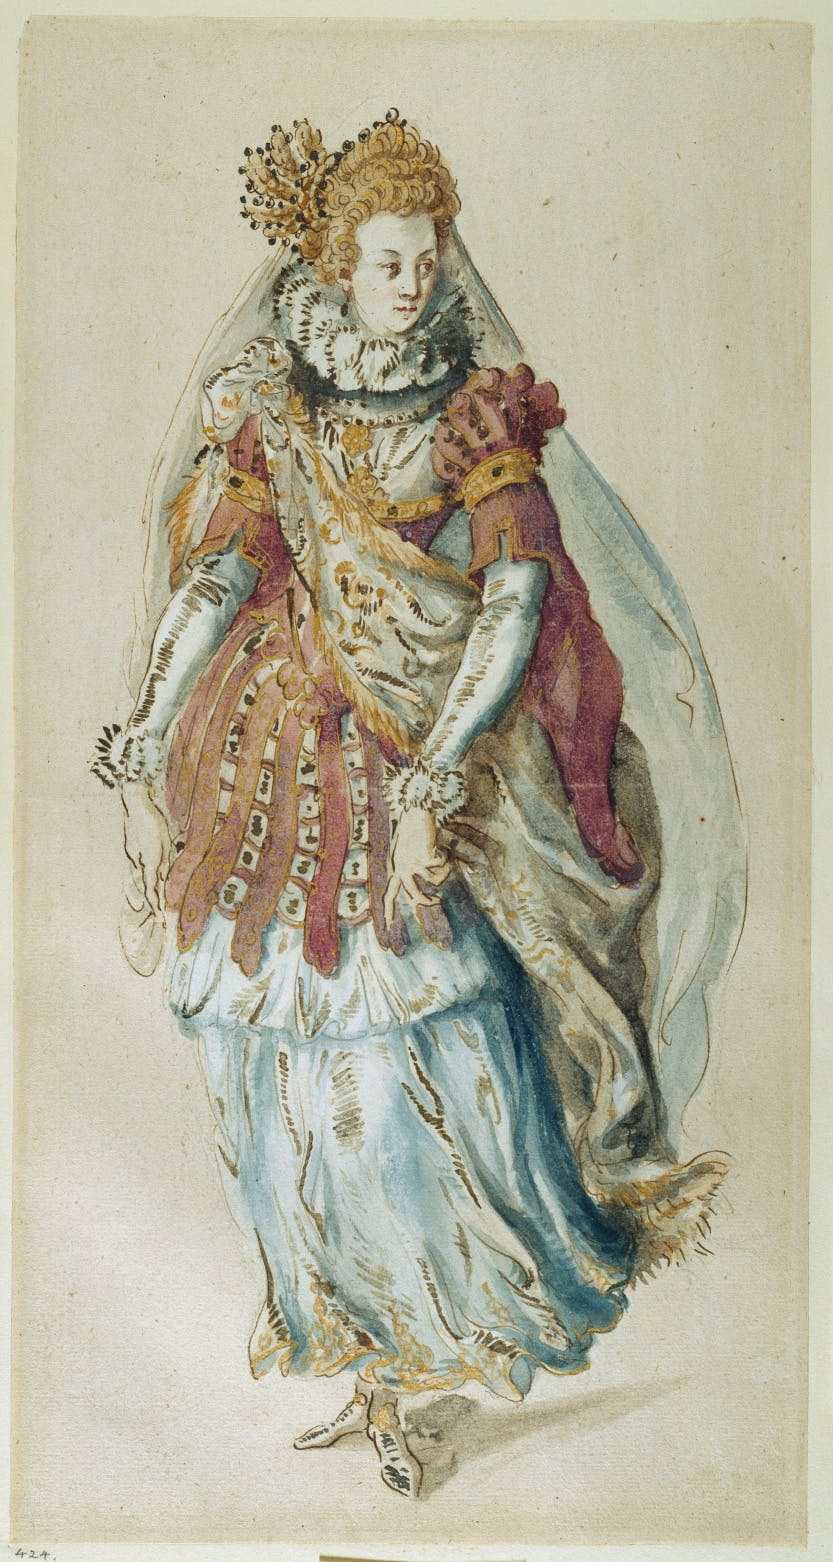 Early masque costume design by Inigo Jones, 'A Statue Transformed'